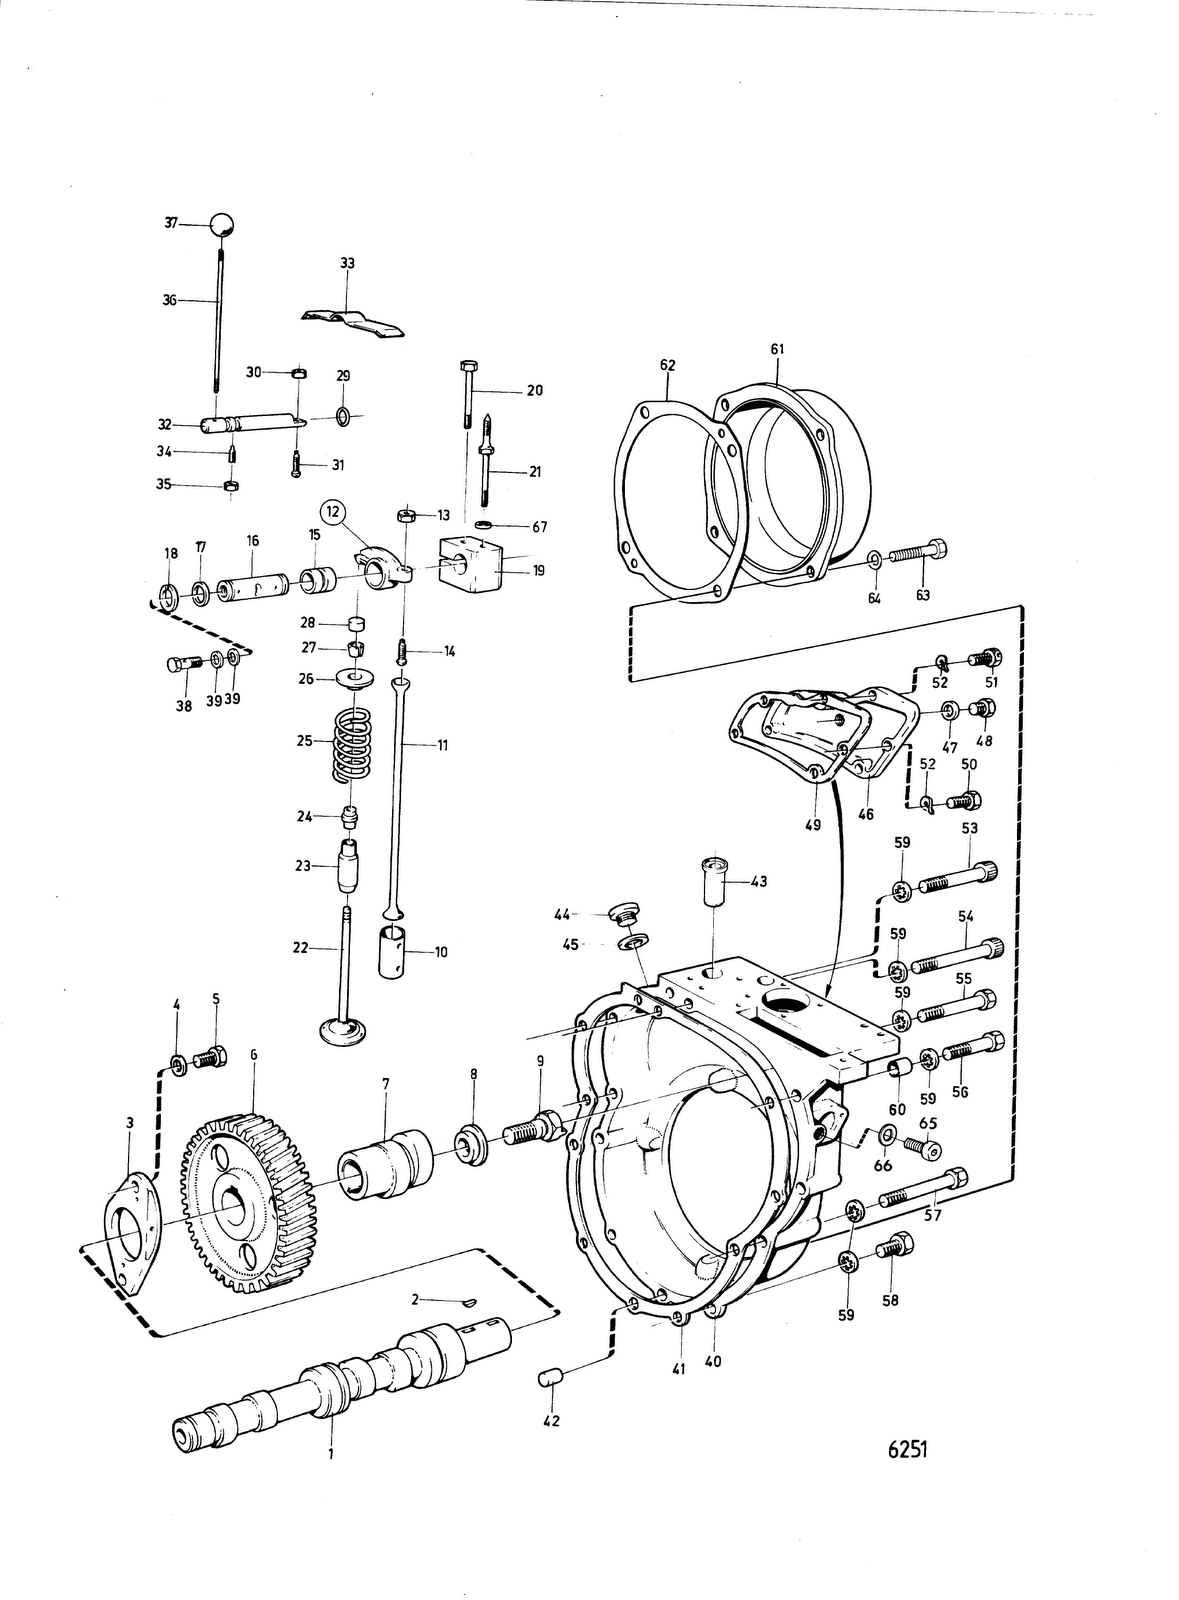 volvo penta md11c d manual repair engine marine md17c d online volvo penta md11c wiring diagram [ 1179 x 1600 Pixel ]